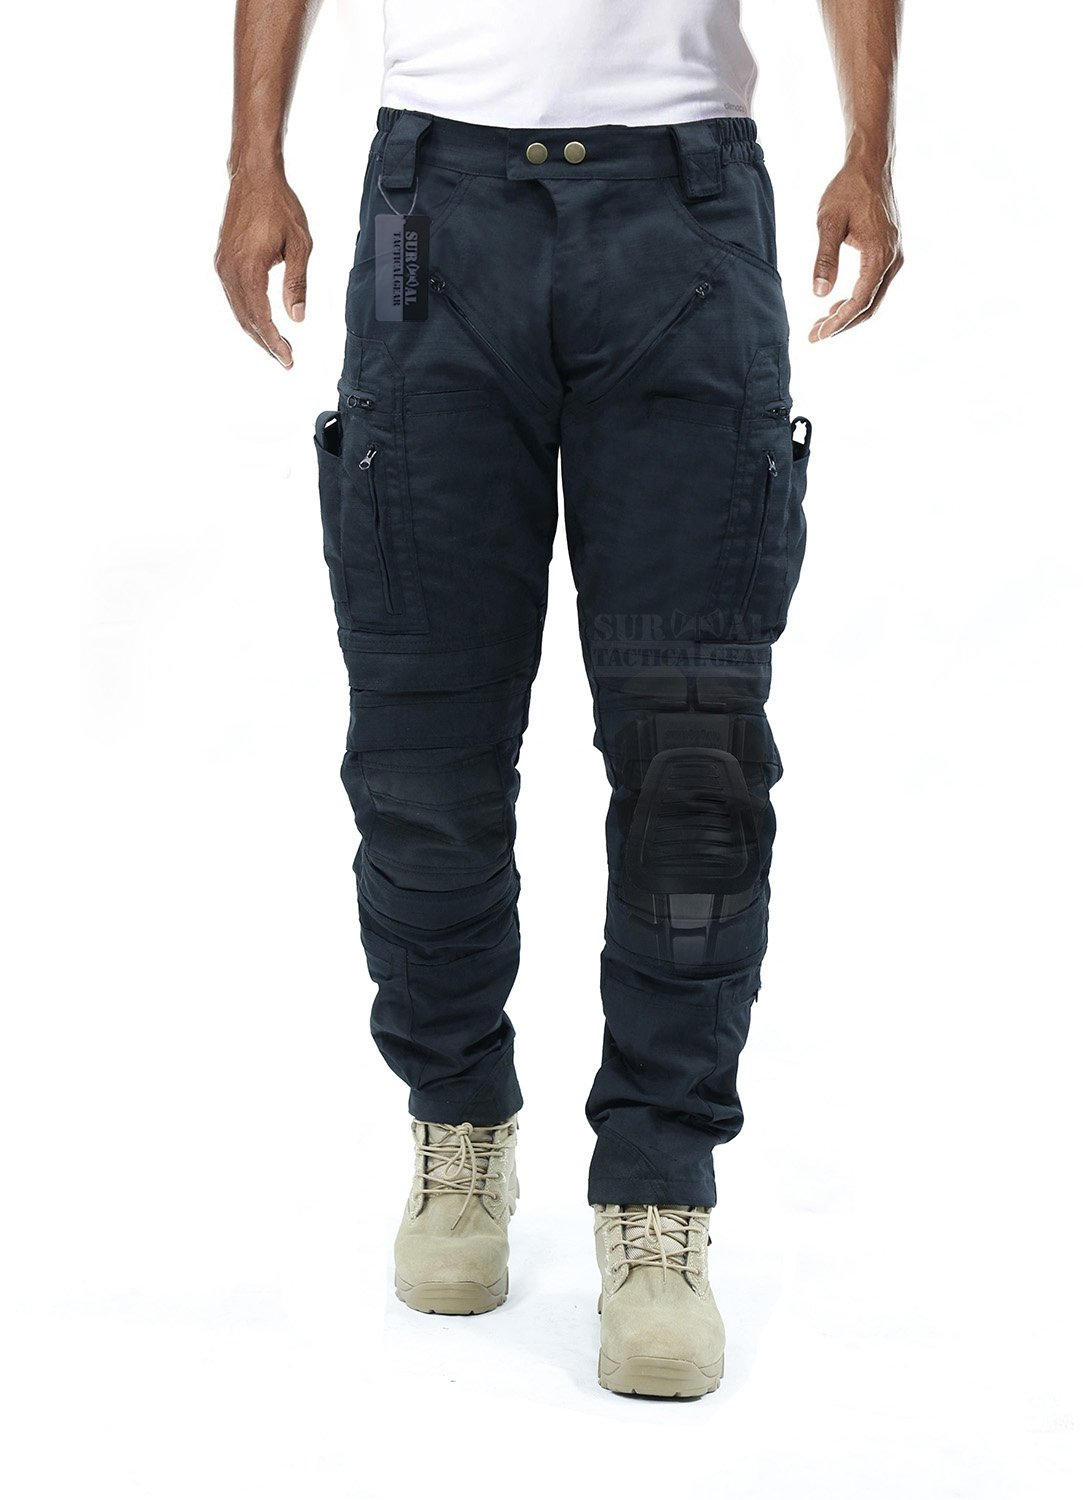 Survival Tactical Gear Men's Airsoft Wargame Tactical Pants with Knee Protection System & Air Circulation System (Iron Black, L) by Survival Tactical Gear